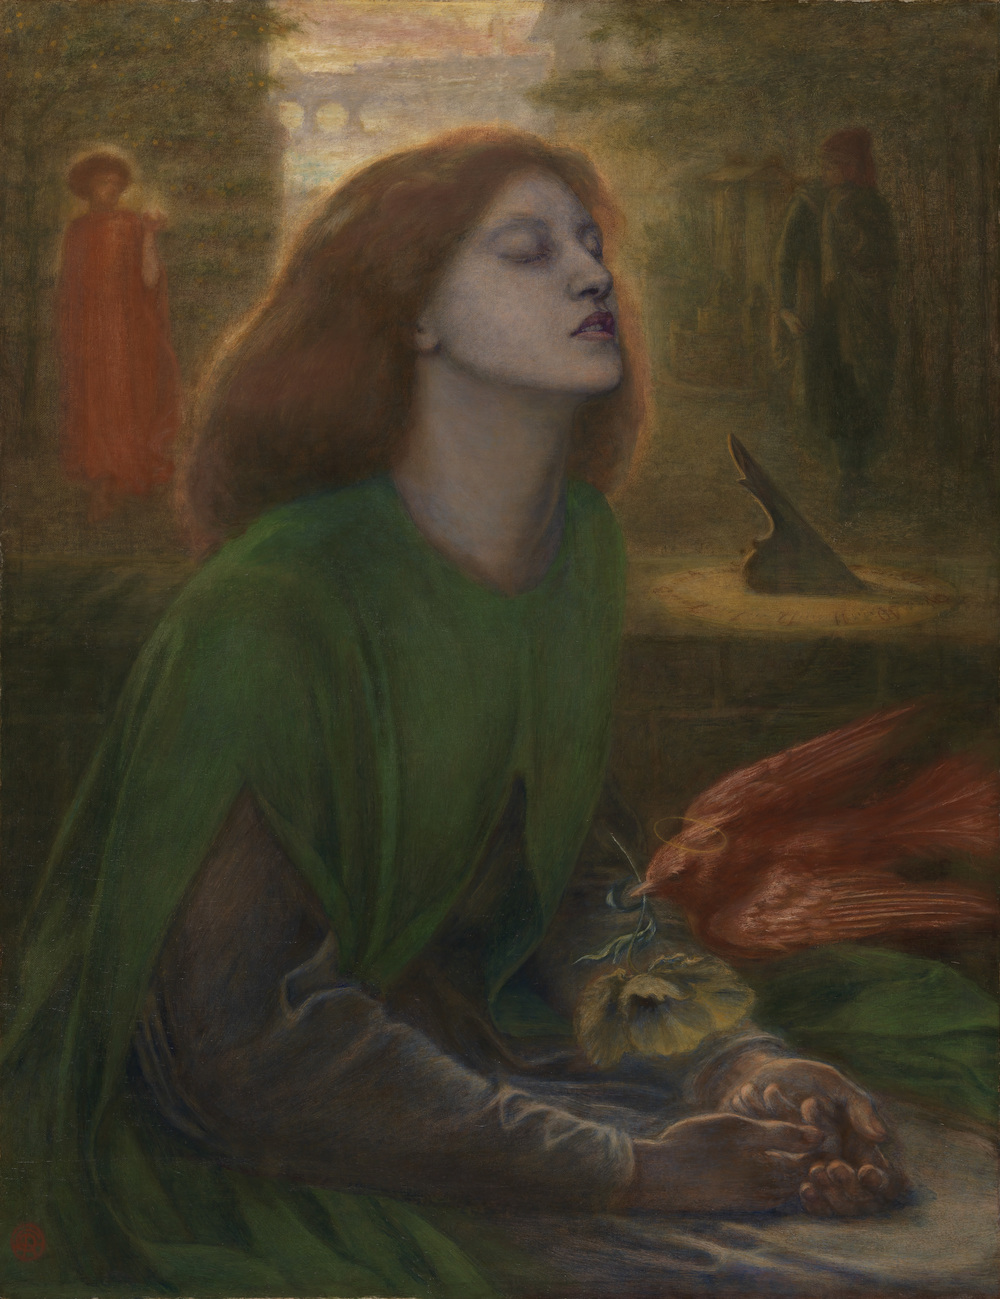 Beata Beatrix c. 1864-70    , Dante Gabriel Rossetti 1828 - 1882   , Oil paint on canvas  , 864 x 660 mm  , Tate. Presented by Georgiana Baroness Mount-Temple in memory of her husband, Francis, Baron Mount-Temple 1889